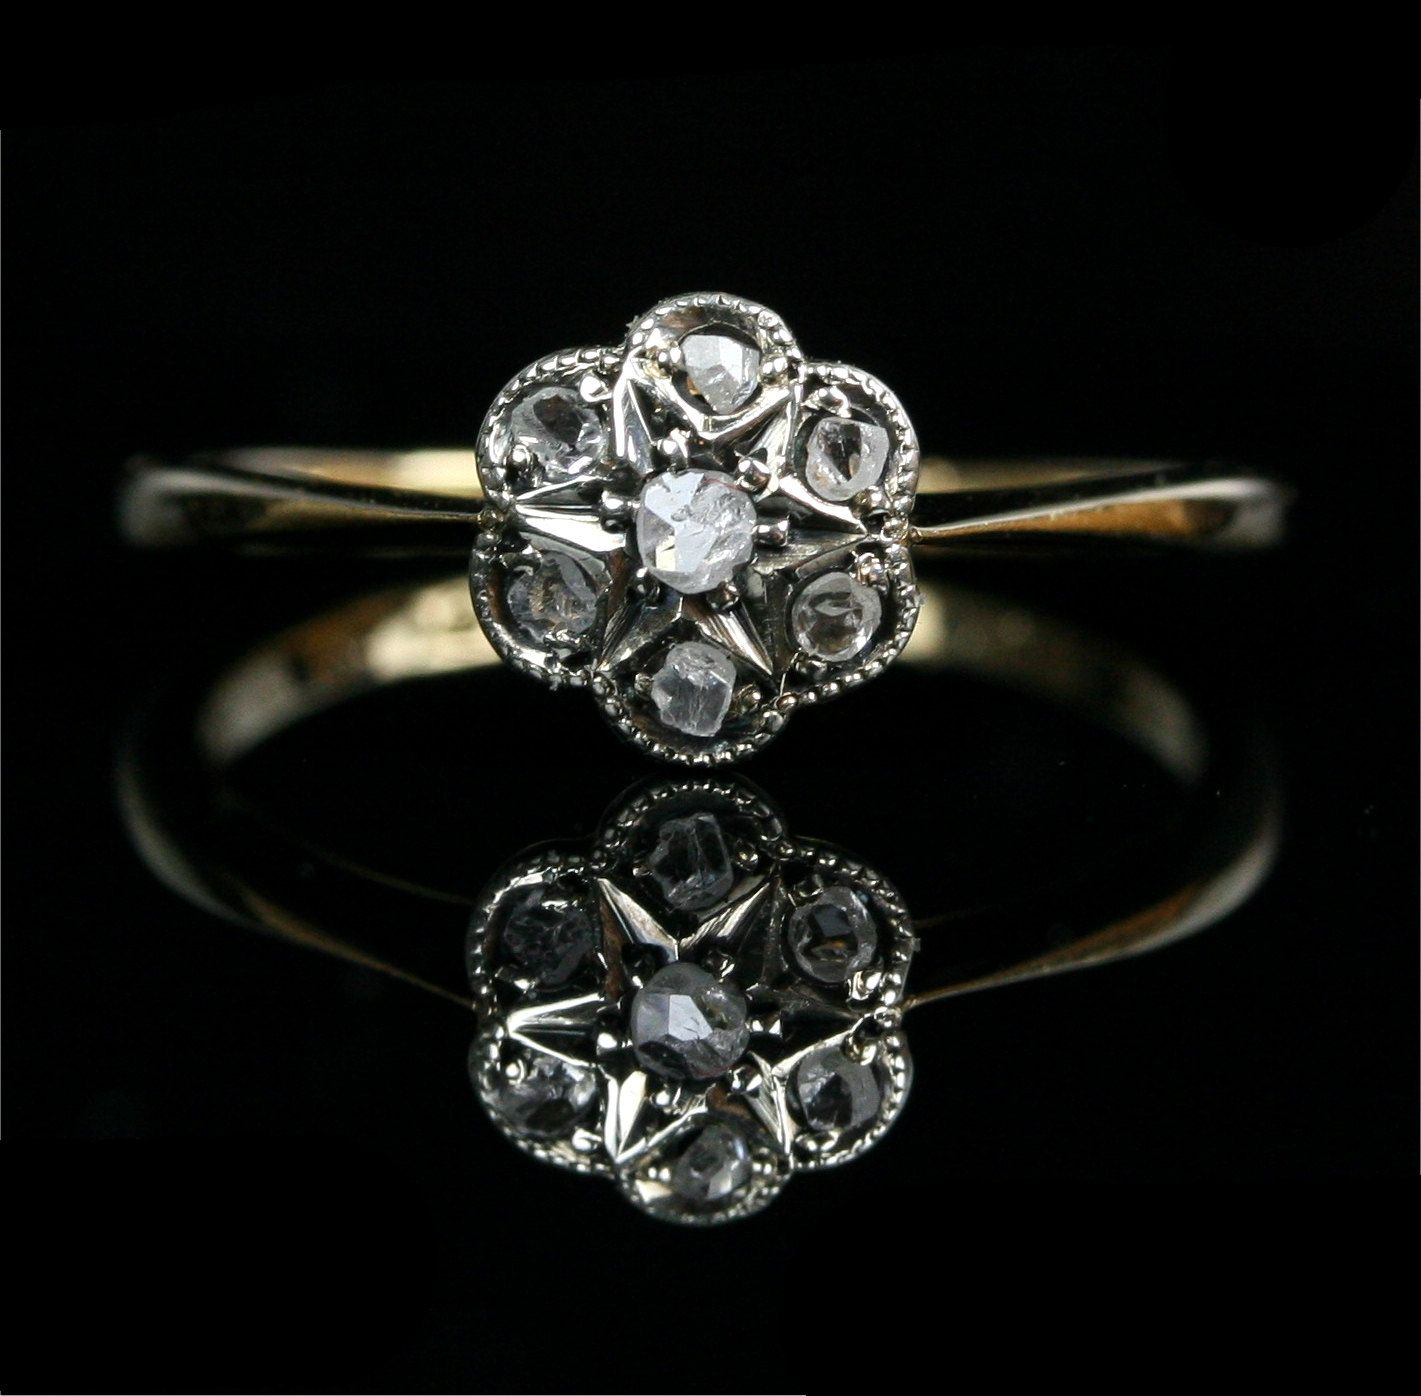 Edwardian 18k Gold Rose Cut Diamond Flower Cluster Engagement Ring